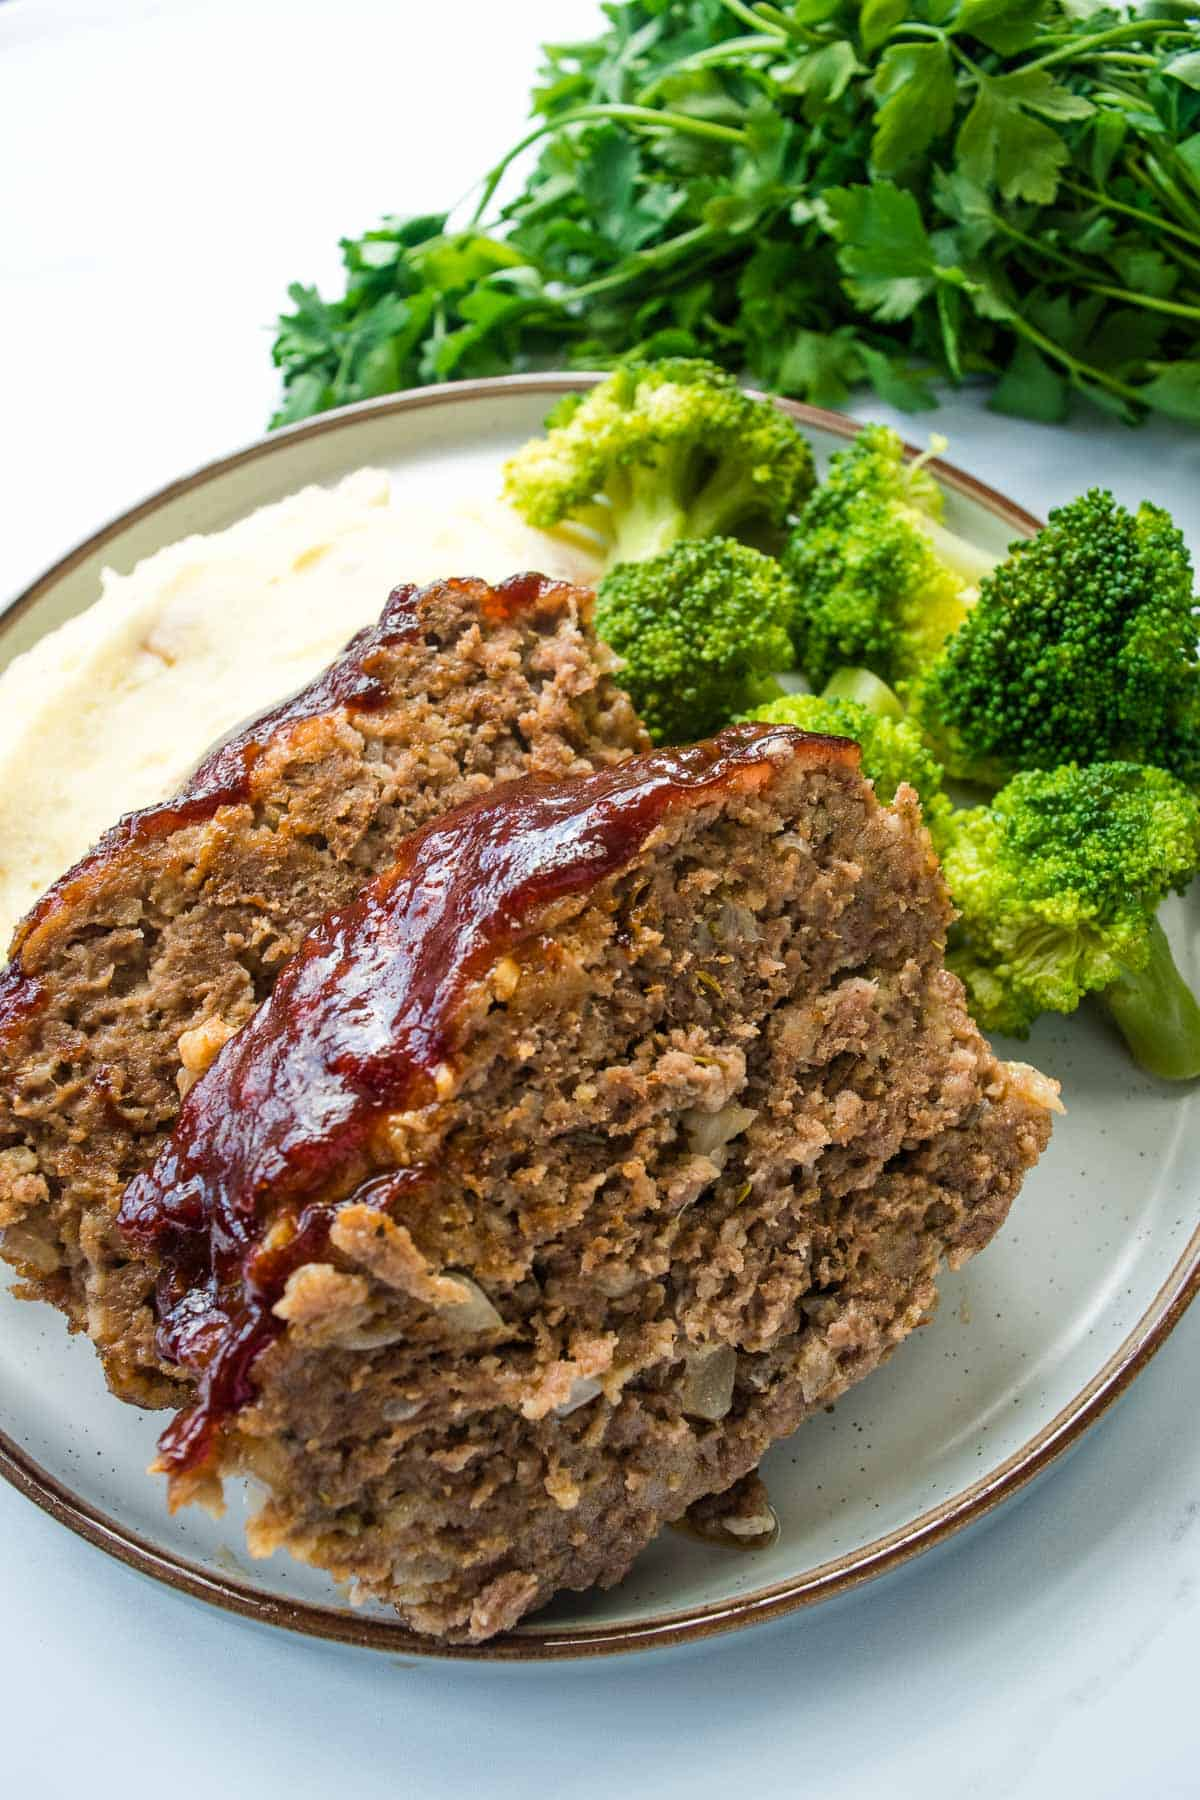 BBQ Meatloaf slices with broccoli and mashed potatoes.